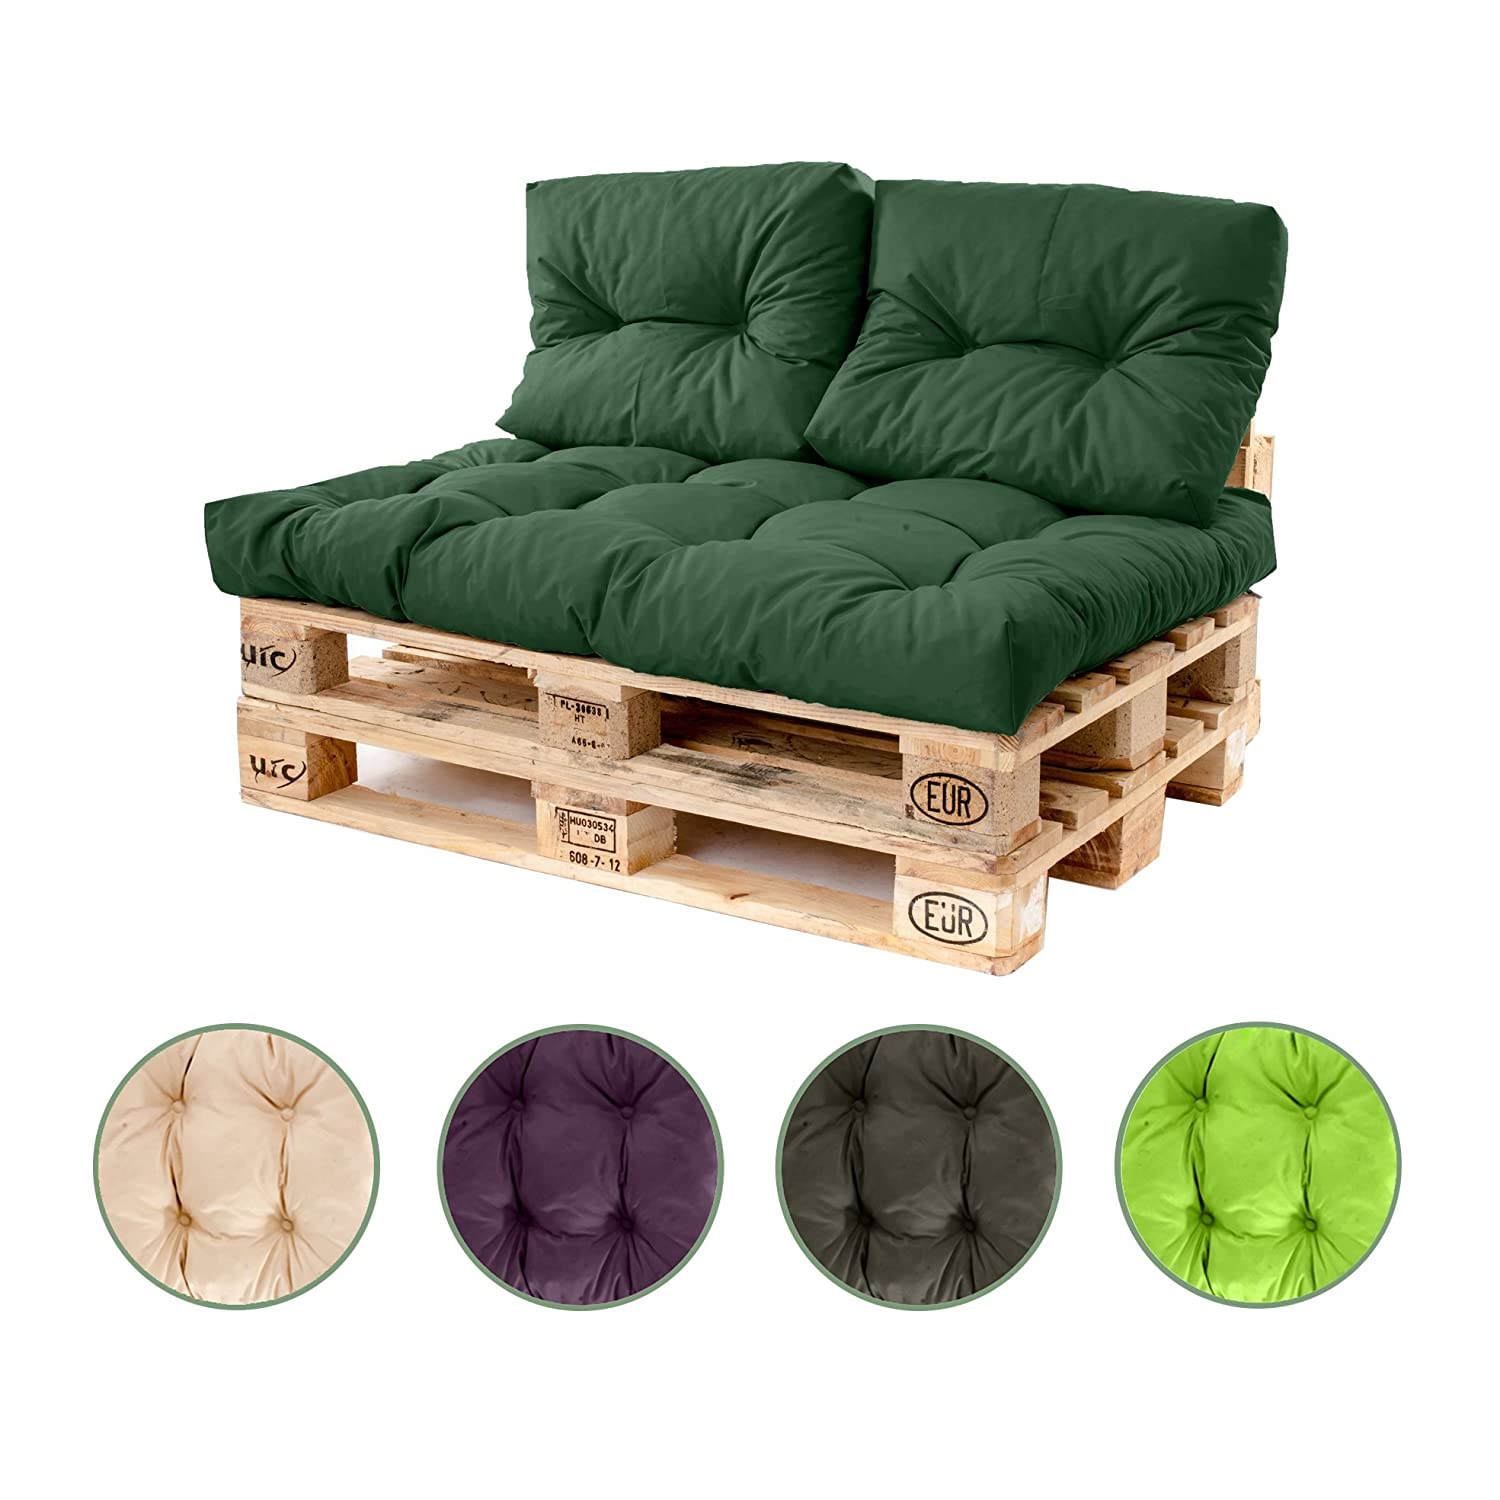 Shopisfy Outdoor Tufted Foam Pallet Cushion ONLY in Water Resistant Fabric Standard Euro Pallet, Small Back Cushion - GREEN